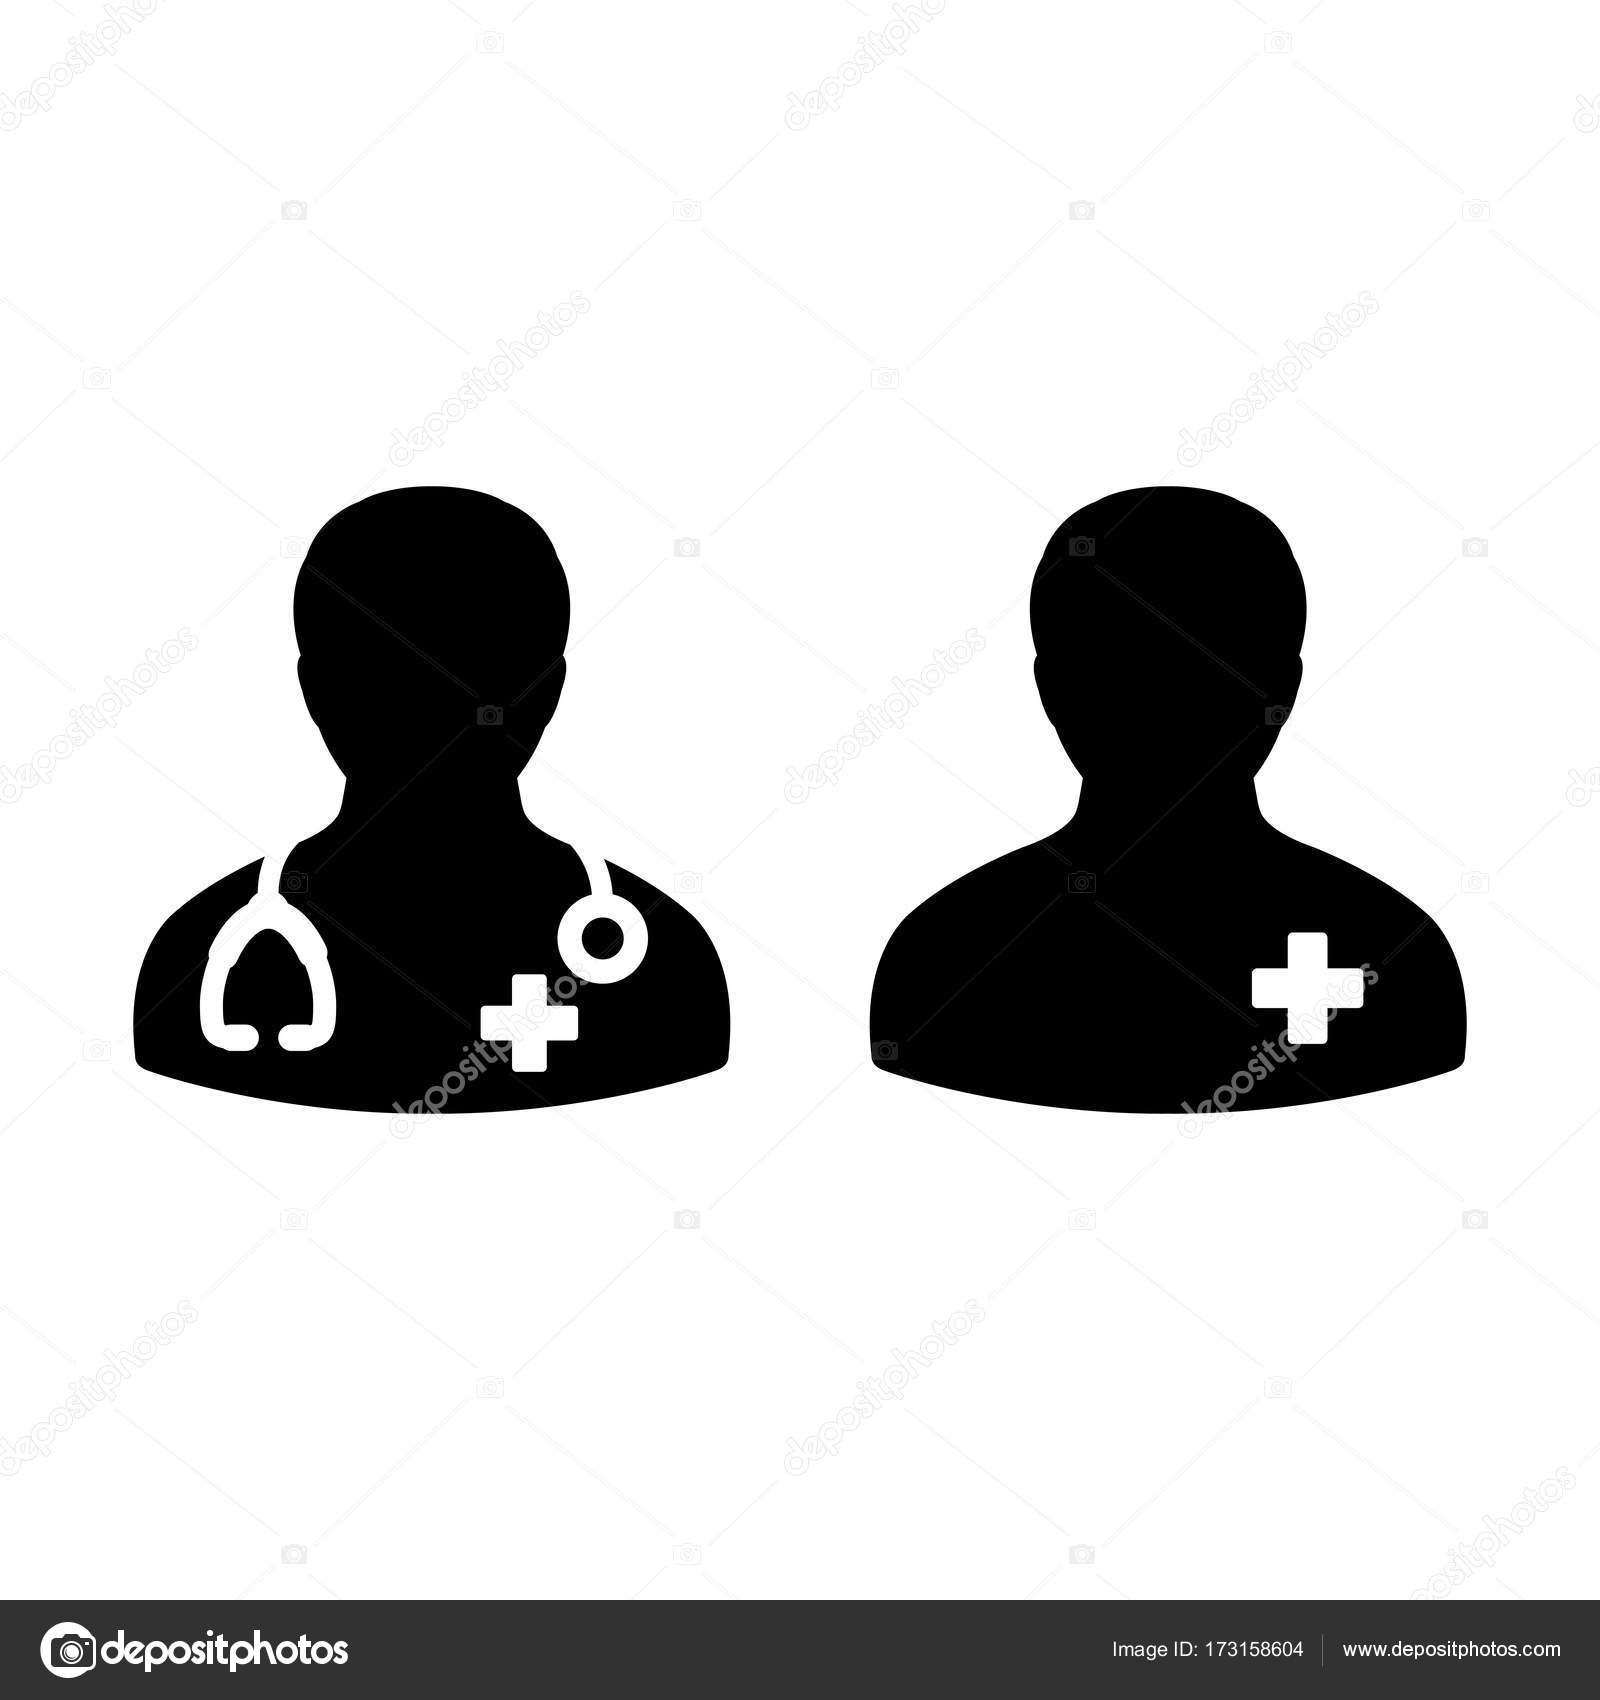 Doctor icon patient medical consultation and assistant male avatar doctor icon with male patient medical consultation and assistant avatar in symbol glyph pictogram illustration vector by tuktukdesign buycottarizona